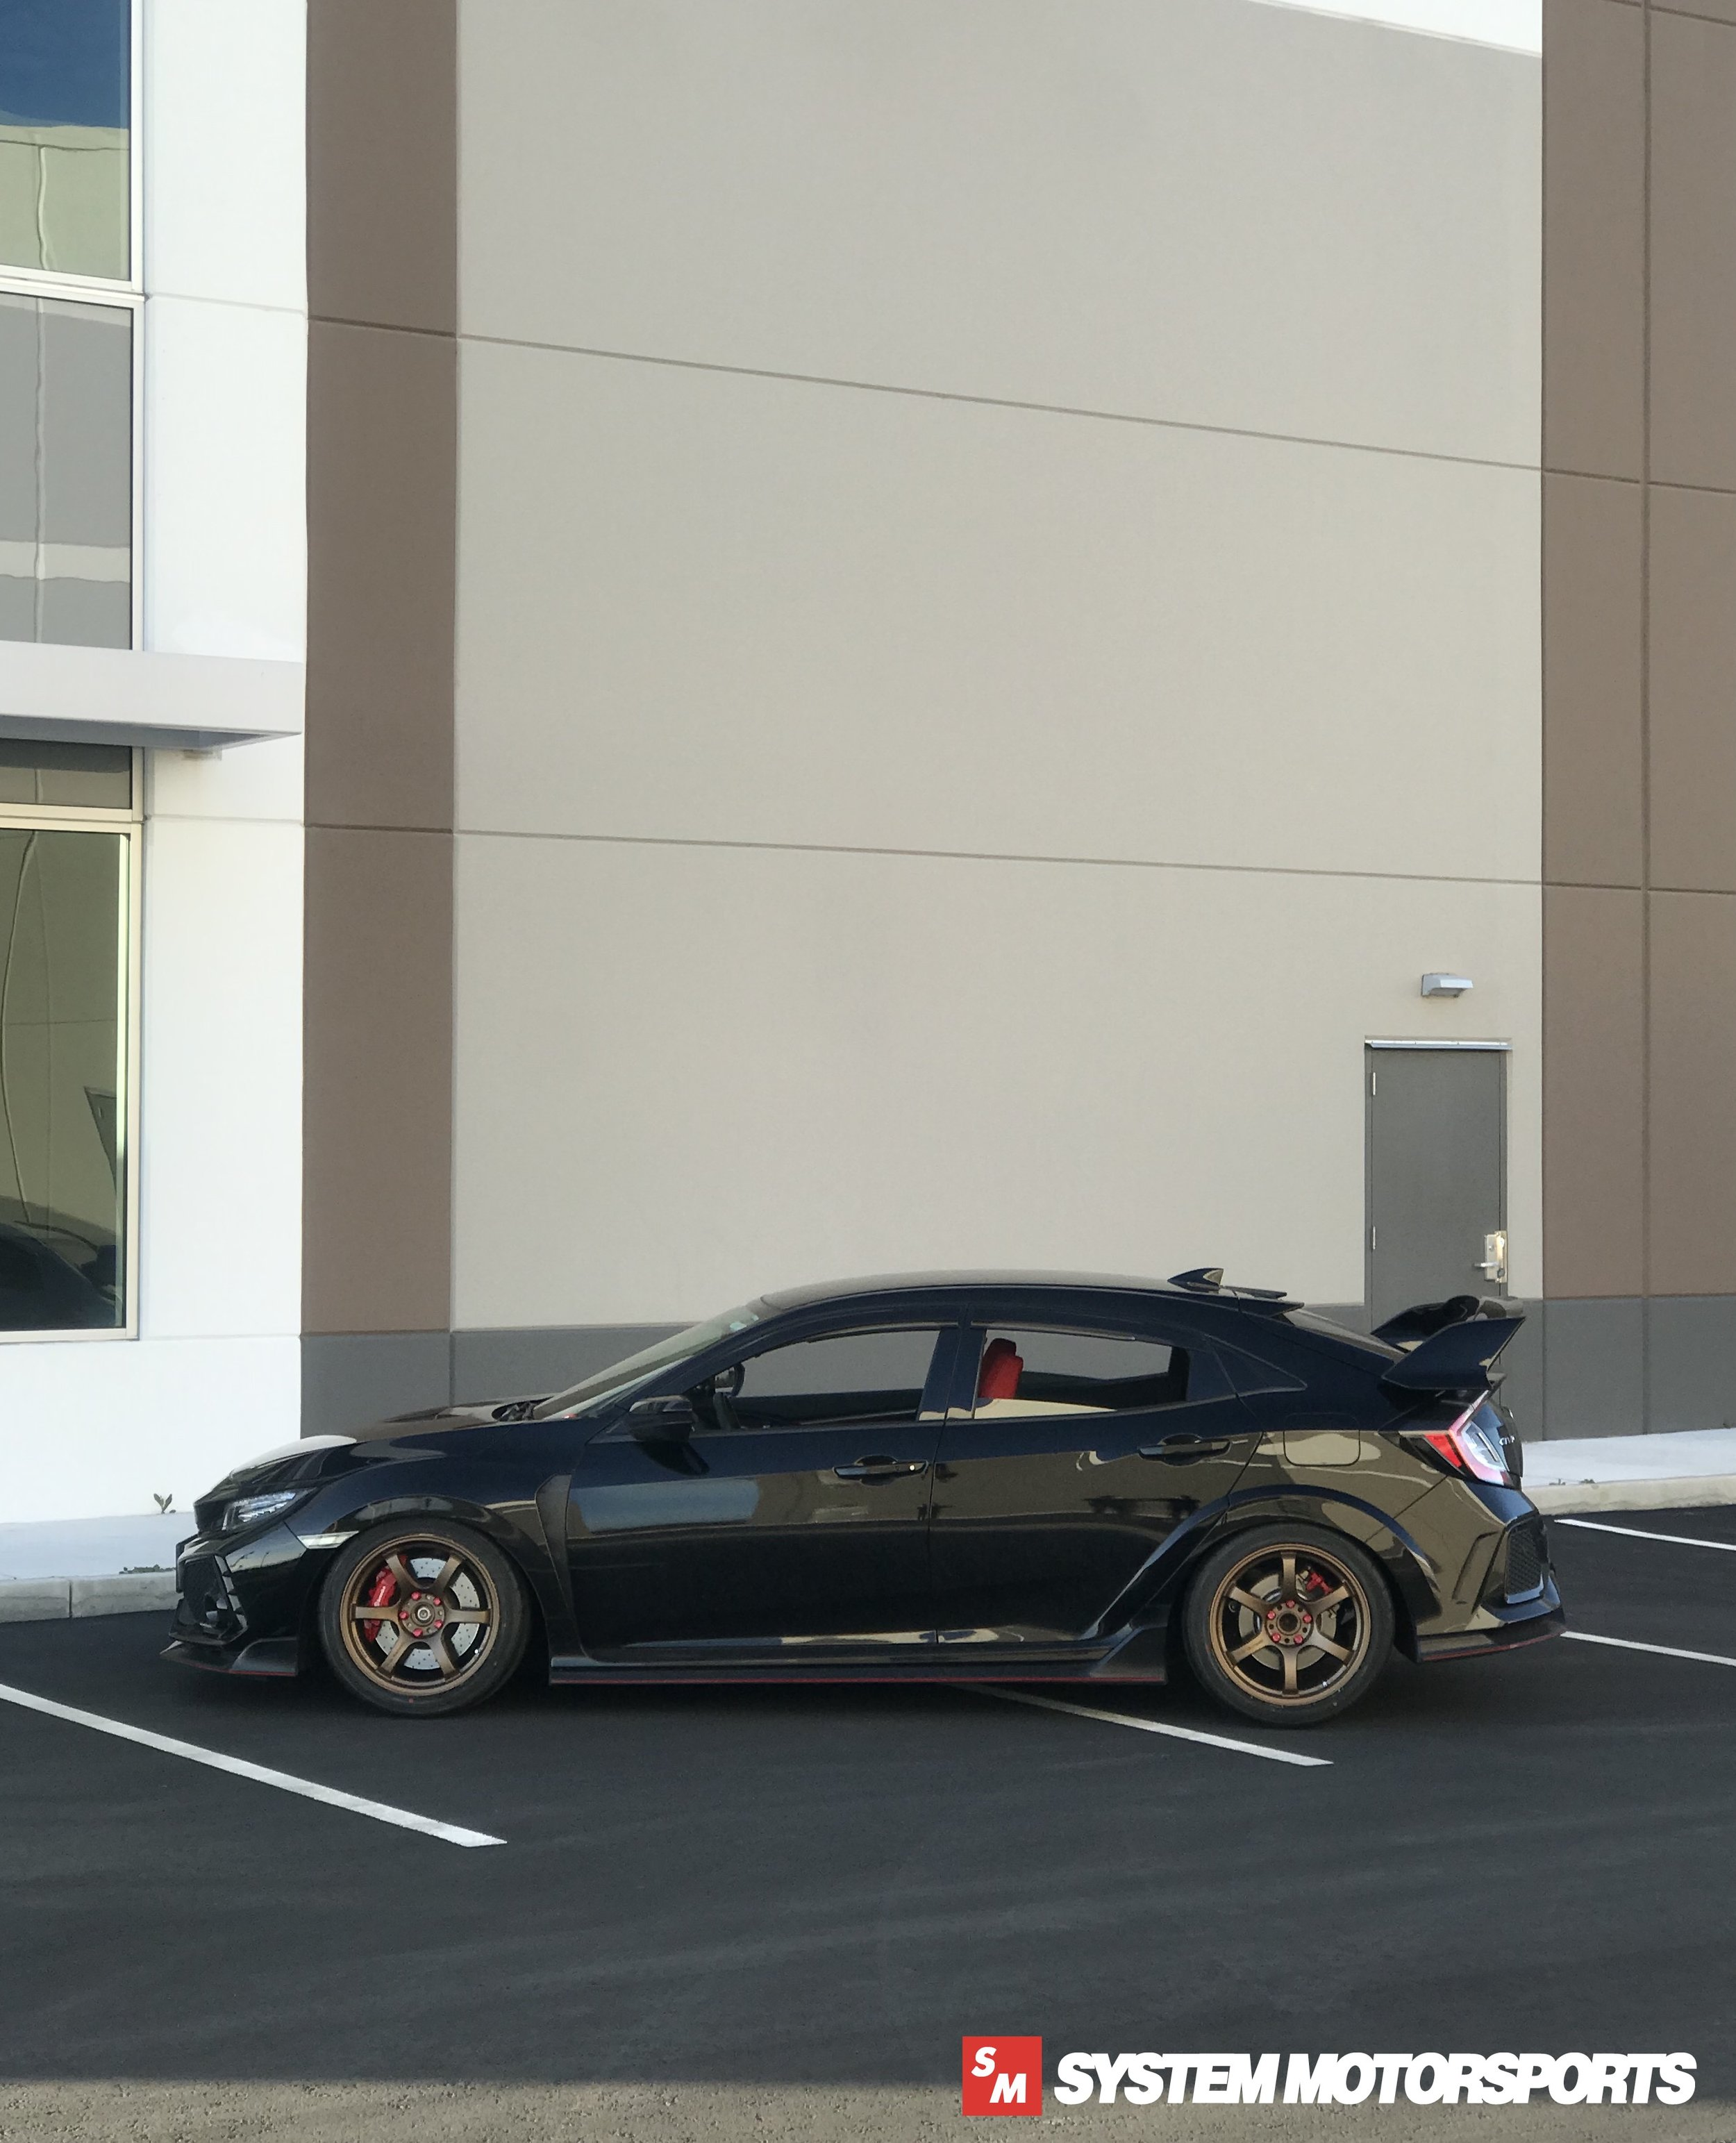 Rays Engineering Gramlights 57DR 18x9.5 +38 5x120 (Bronze) on FK8 Civic Type R Platform - System Motorsports